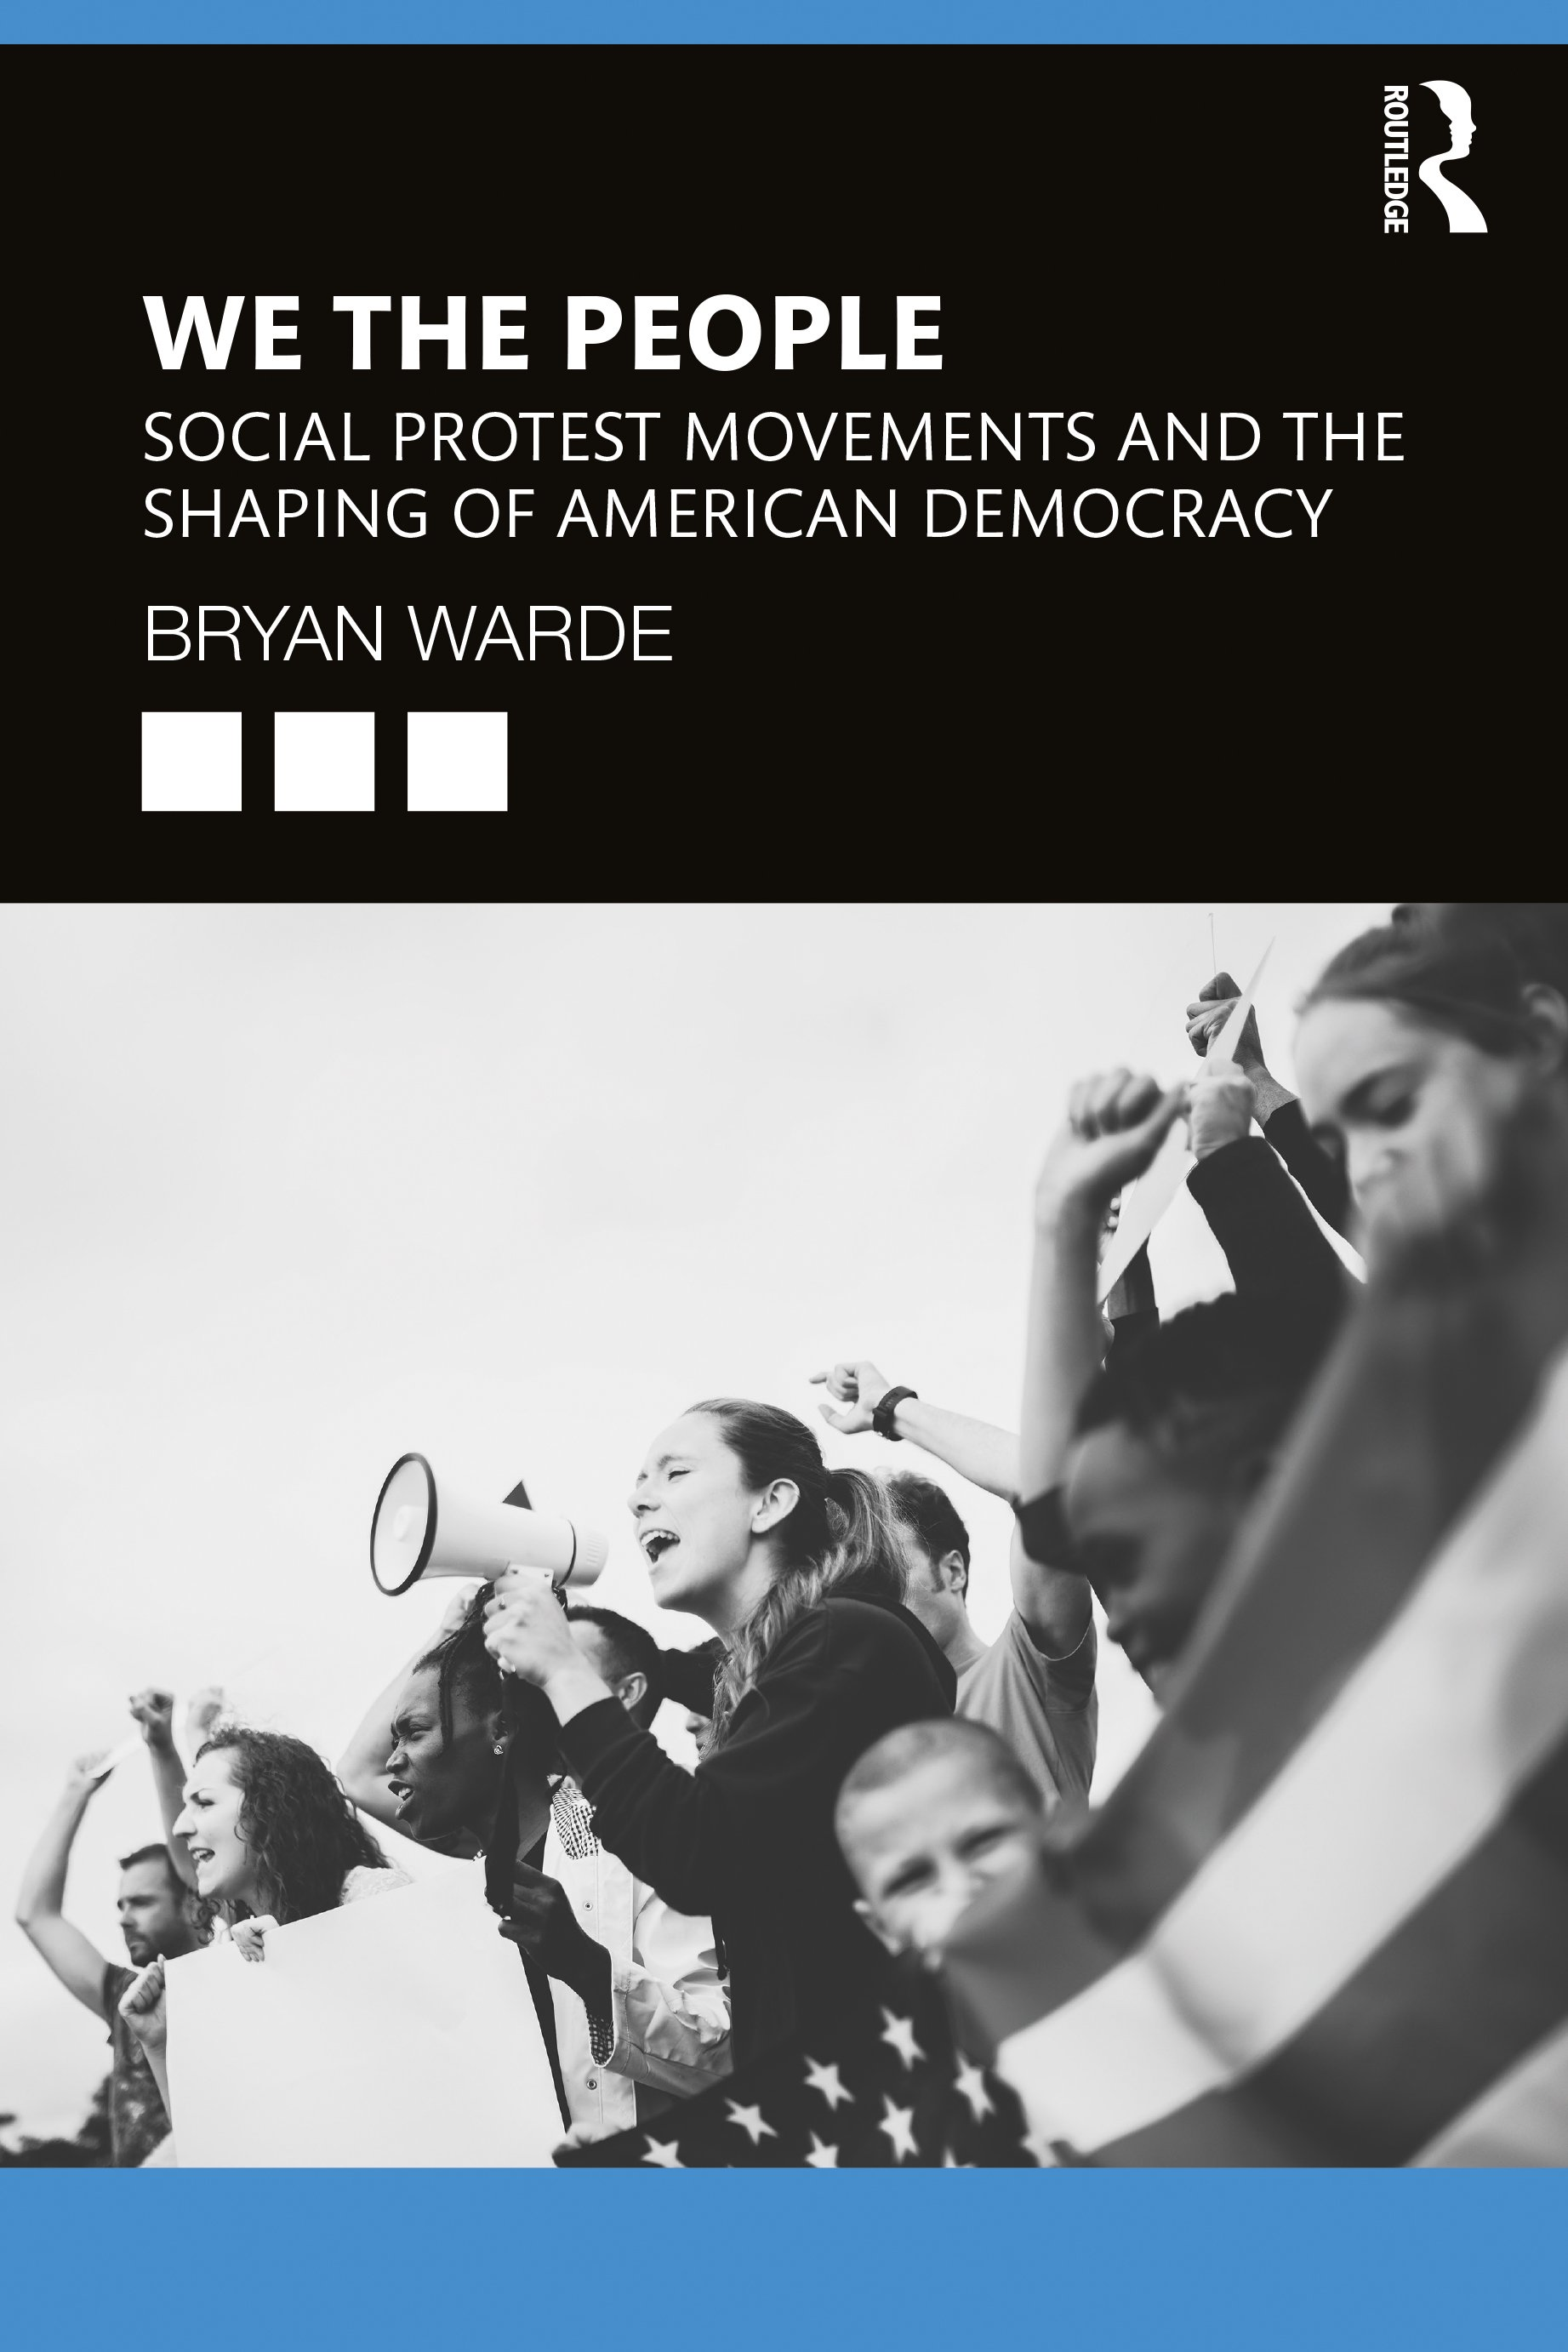 We the People: Social Protests Movements and the Shaping of American Democracy book cover